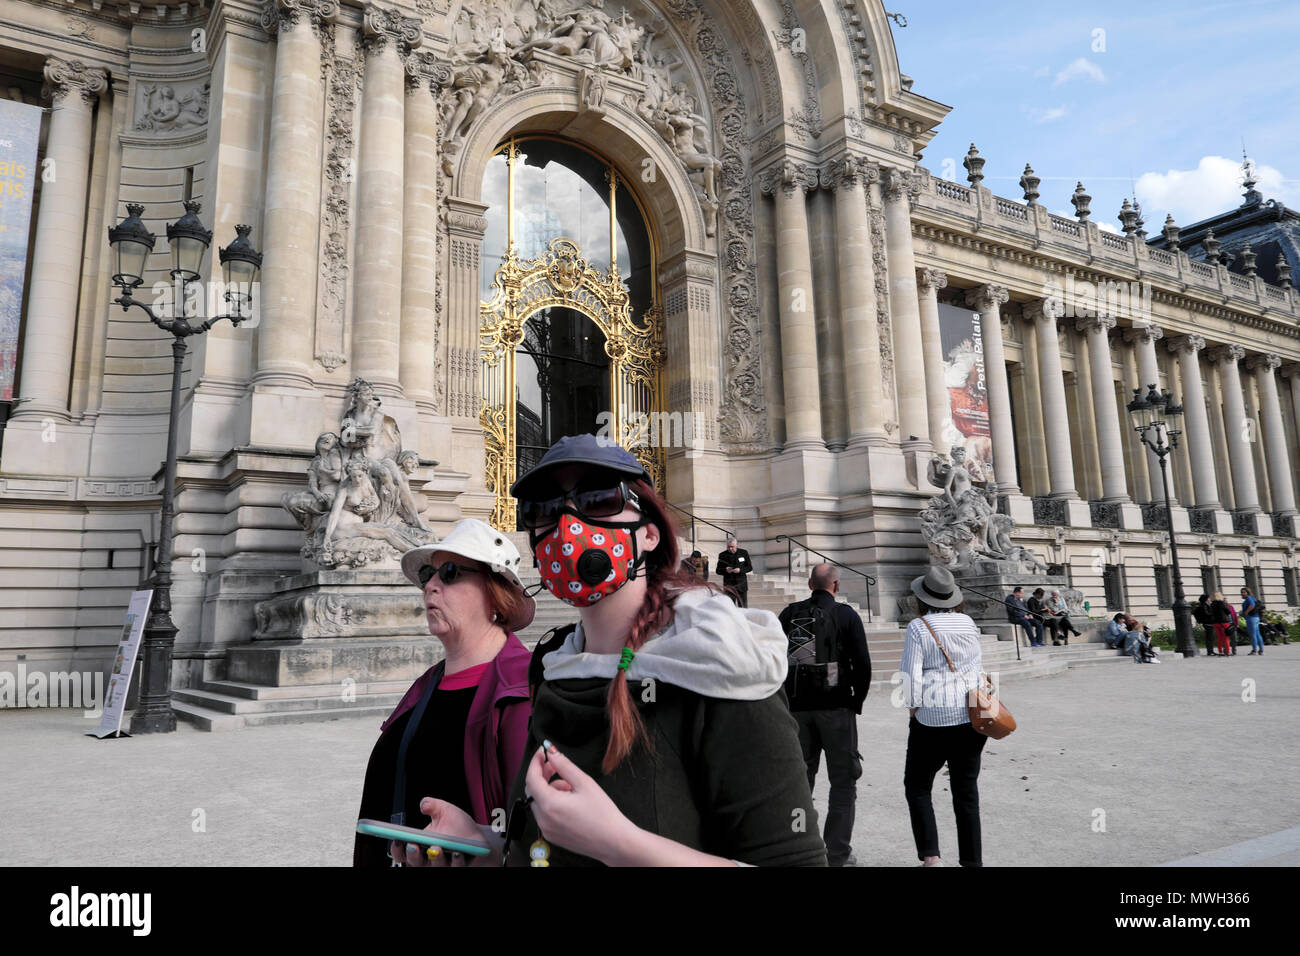 A woman wearing a respiratory mask walking outside the Petit Palais museum building in the street in Paris France    KATHY DEWITT - Stock Image